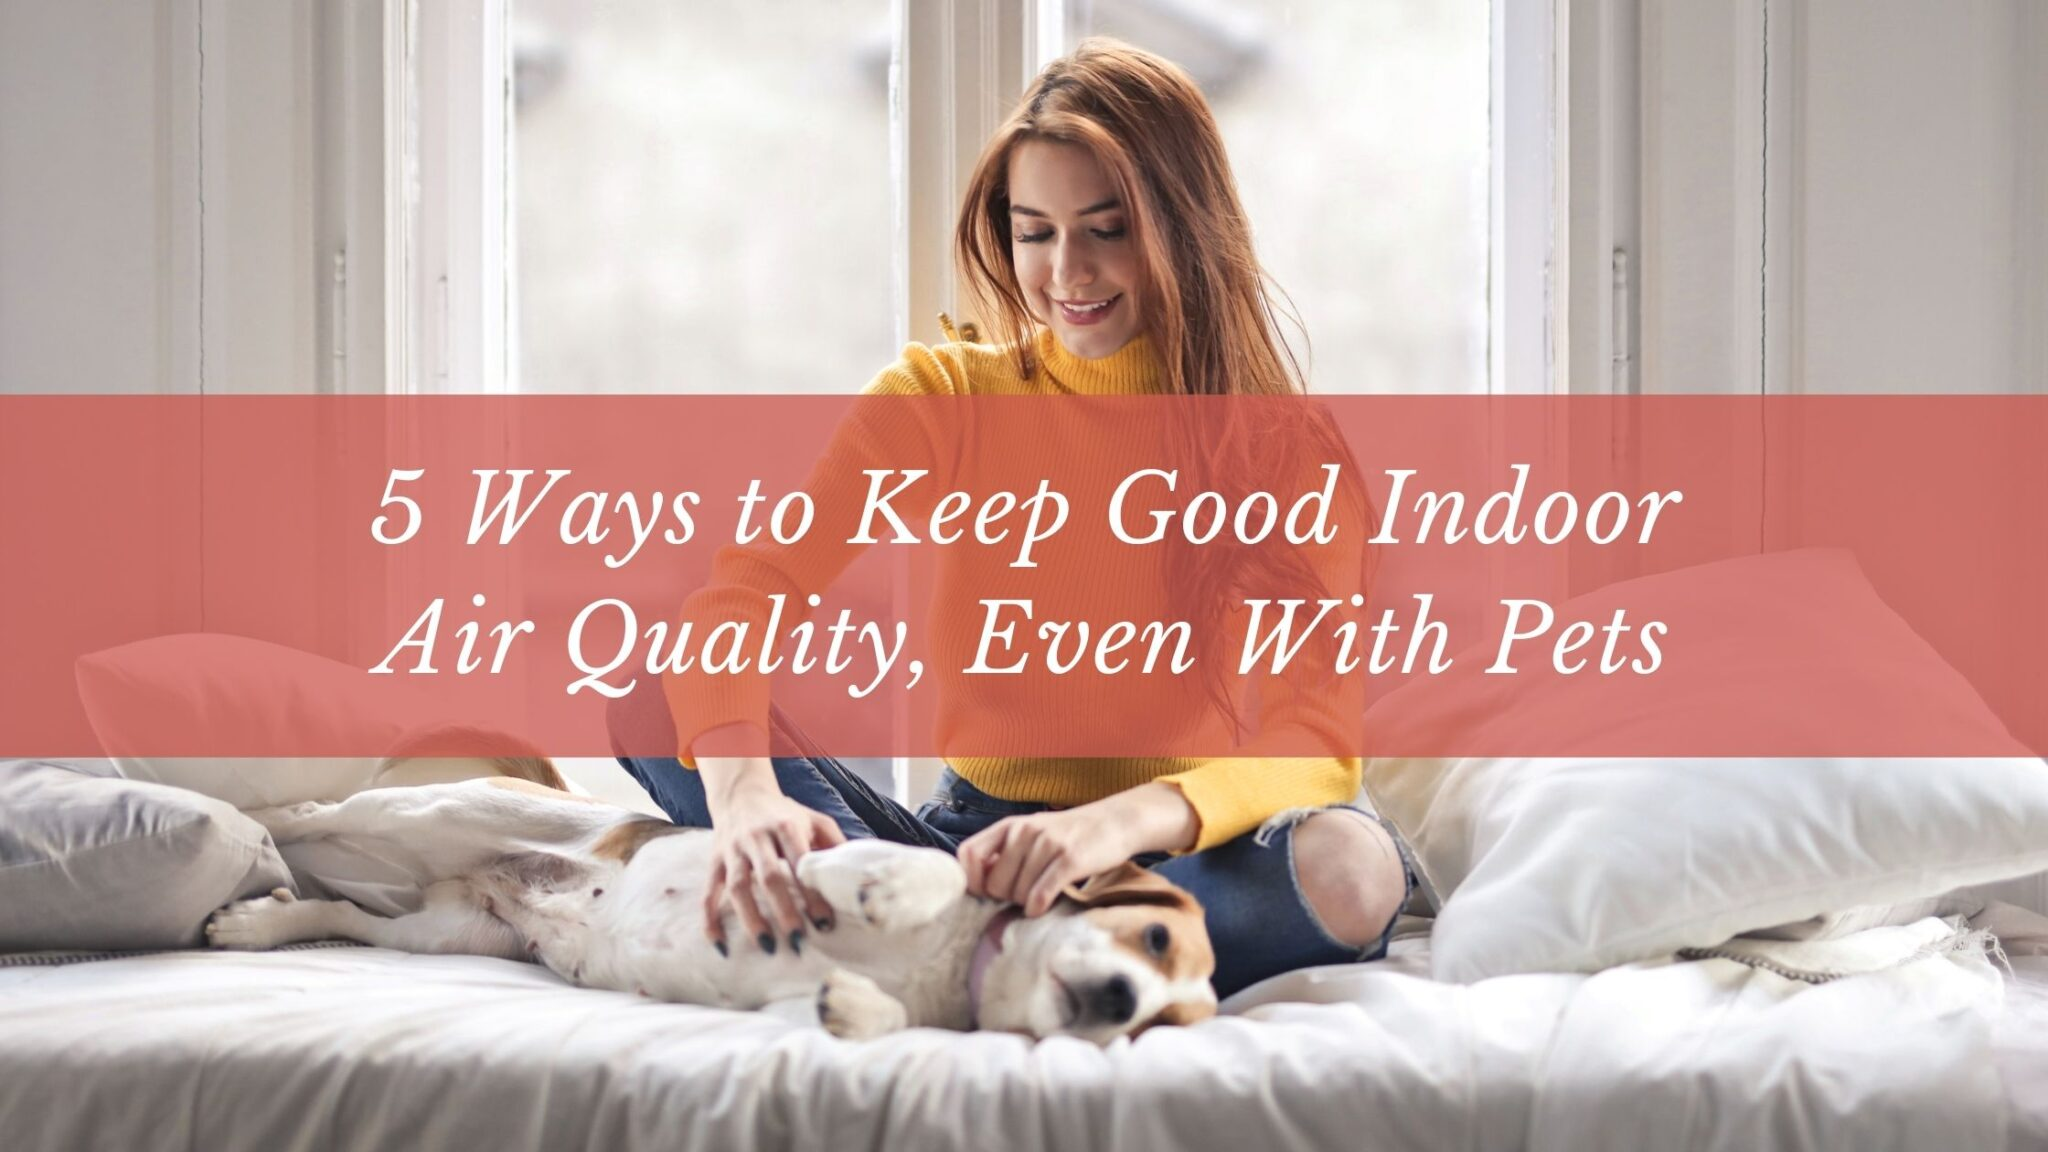 5 Ways to Keep Good Indoor Air Quality, Even With Pets